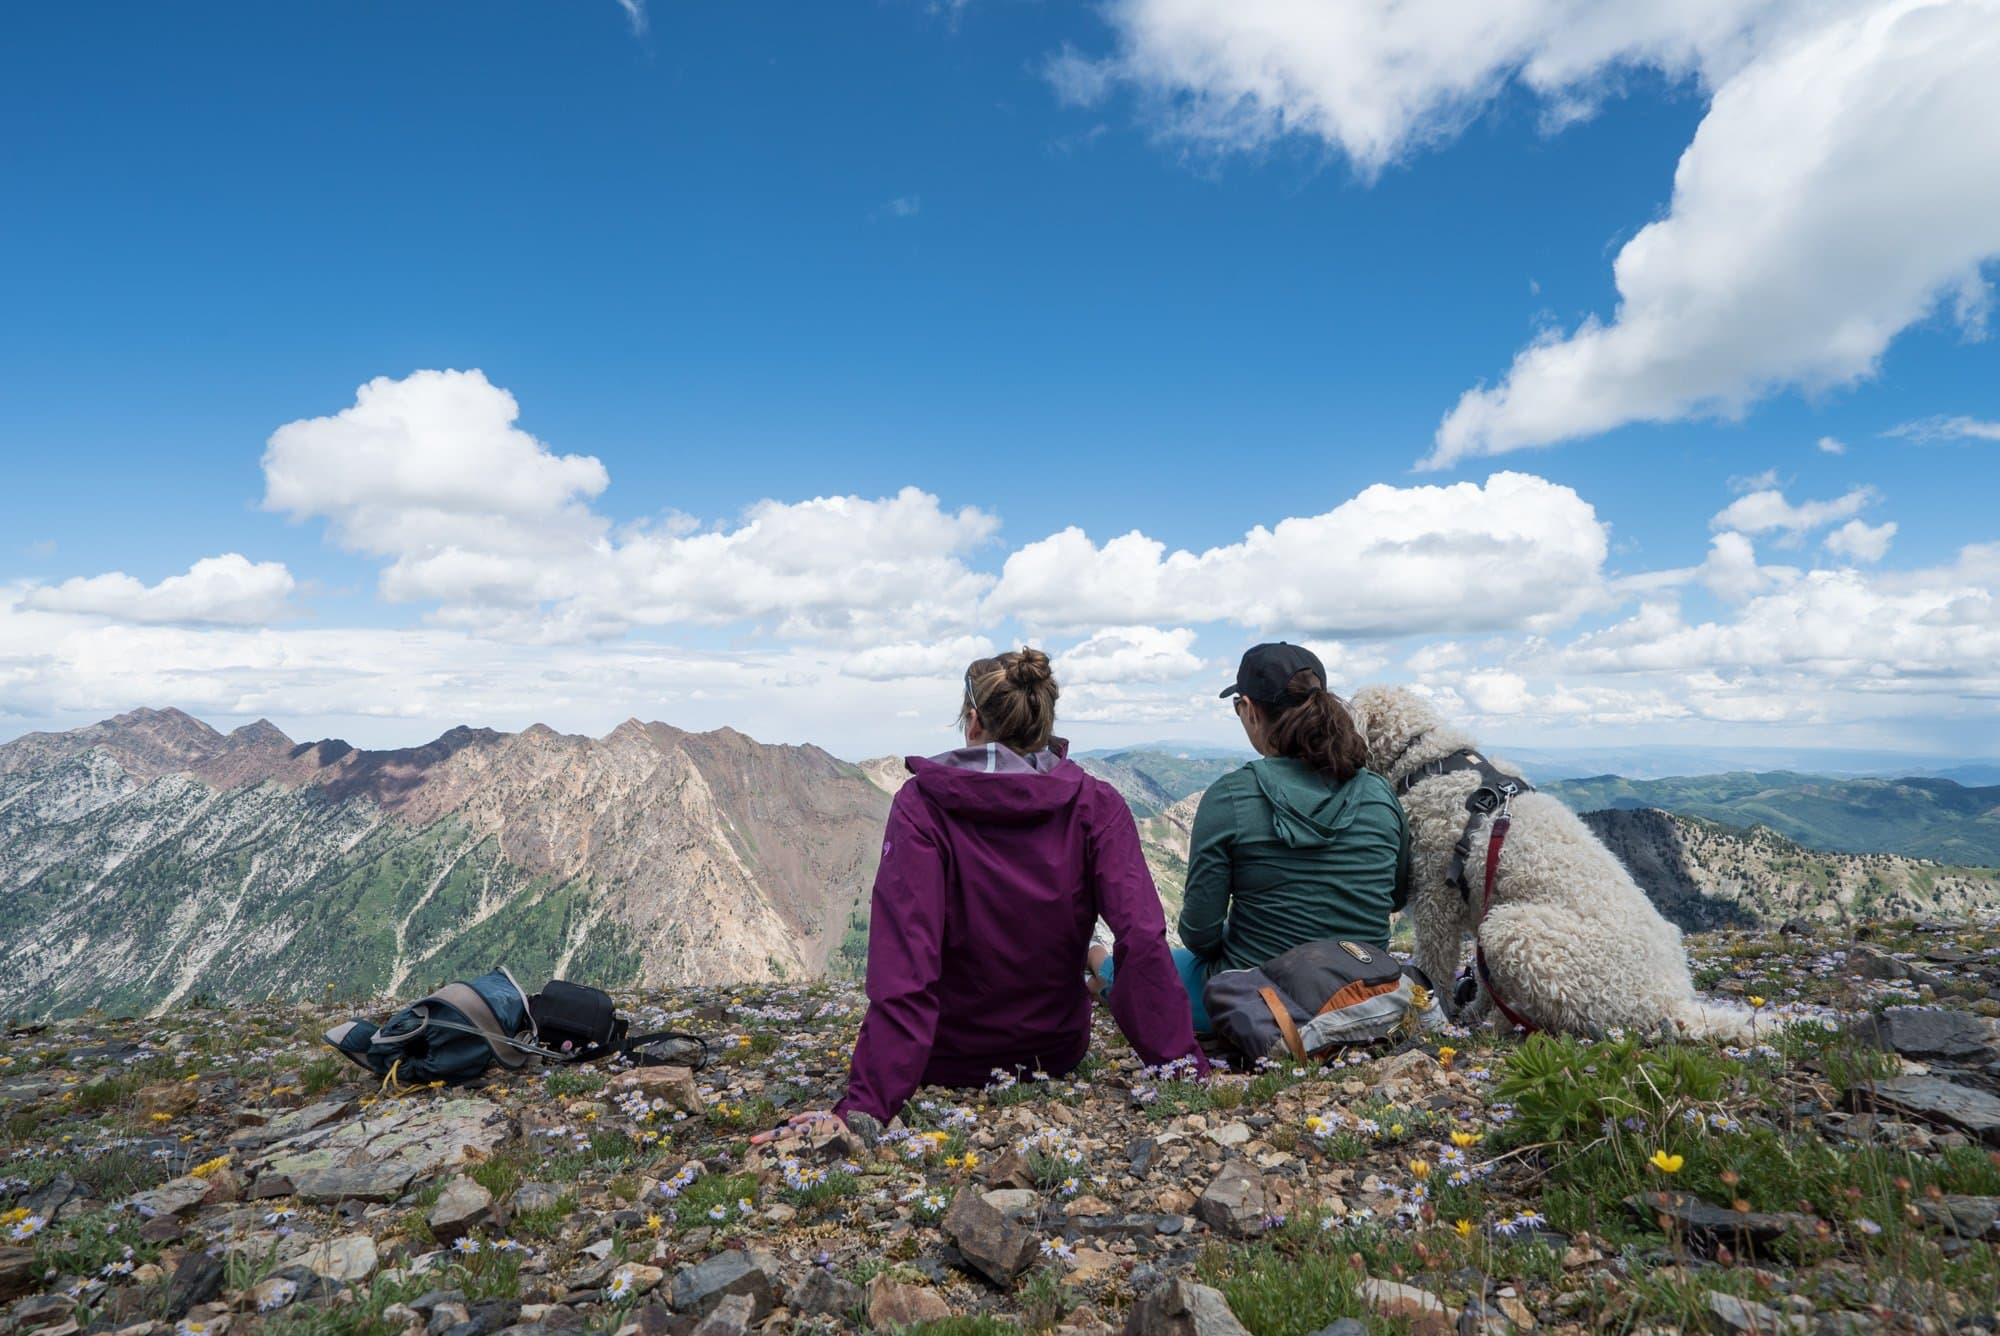 Want to introduce your friends to the outdoors? Check out our helpful tips for taking your friends hiking for the first time. From planning the hike, to packing your backpack, these tips will make for a successful first time on the trail.